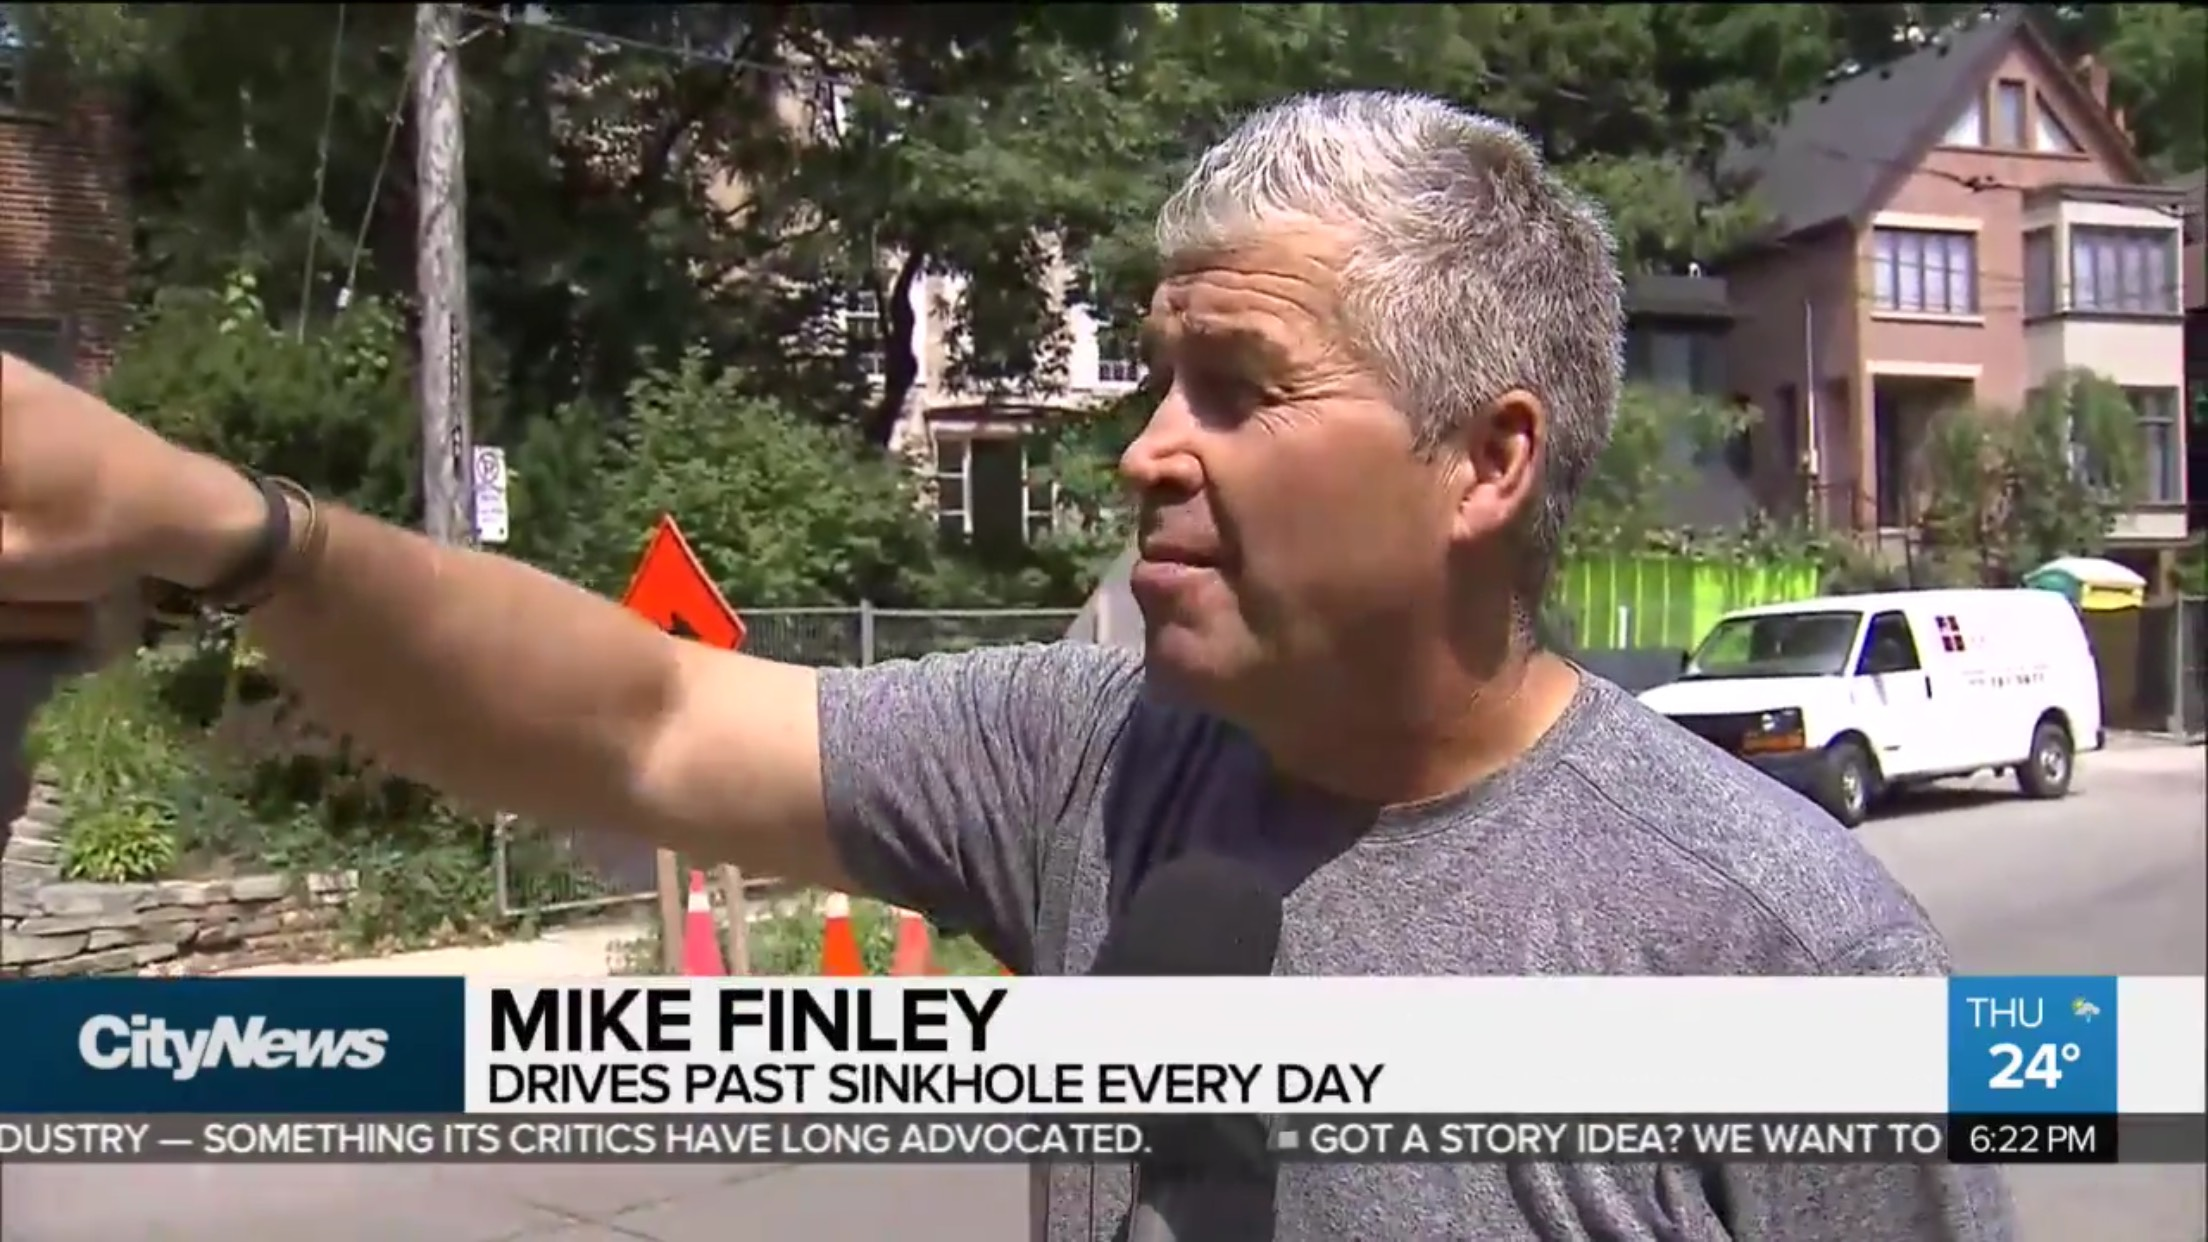 Mike Finley: Drives Past Sinkhole Every Day